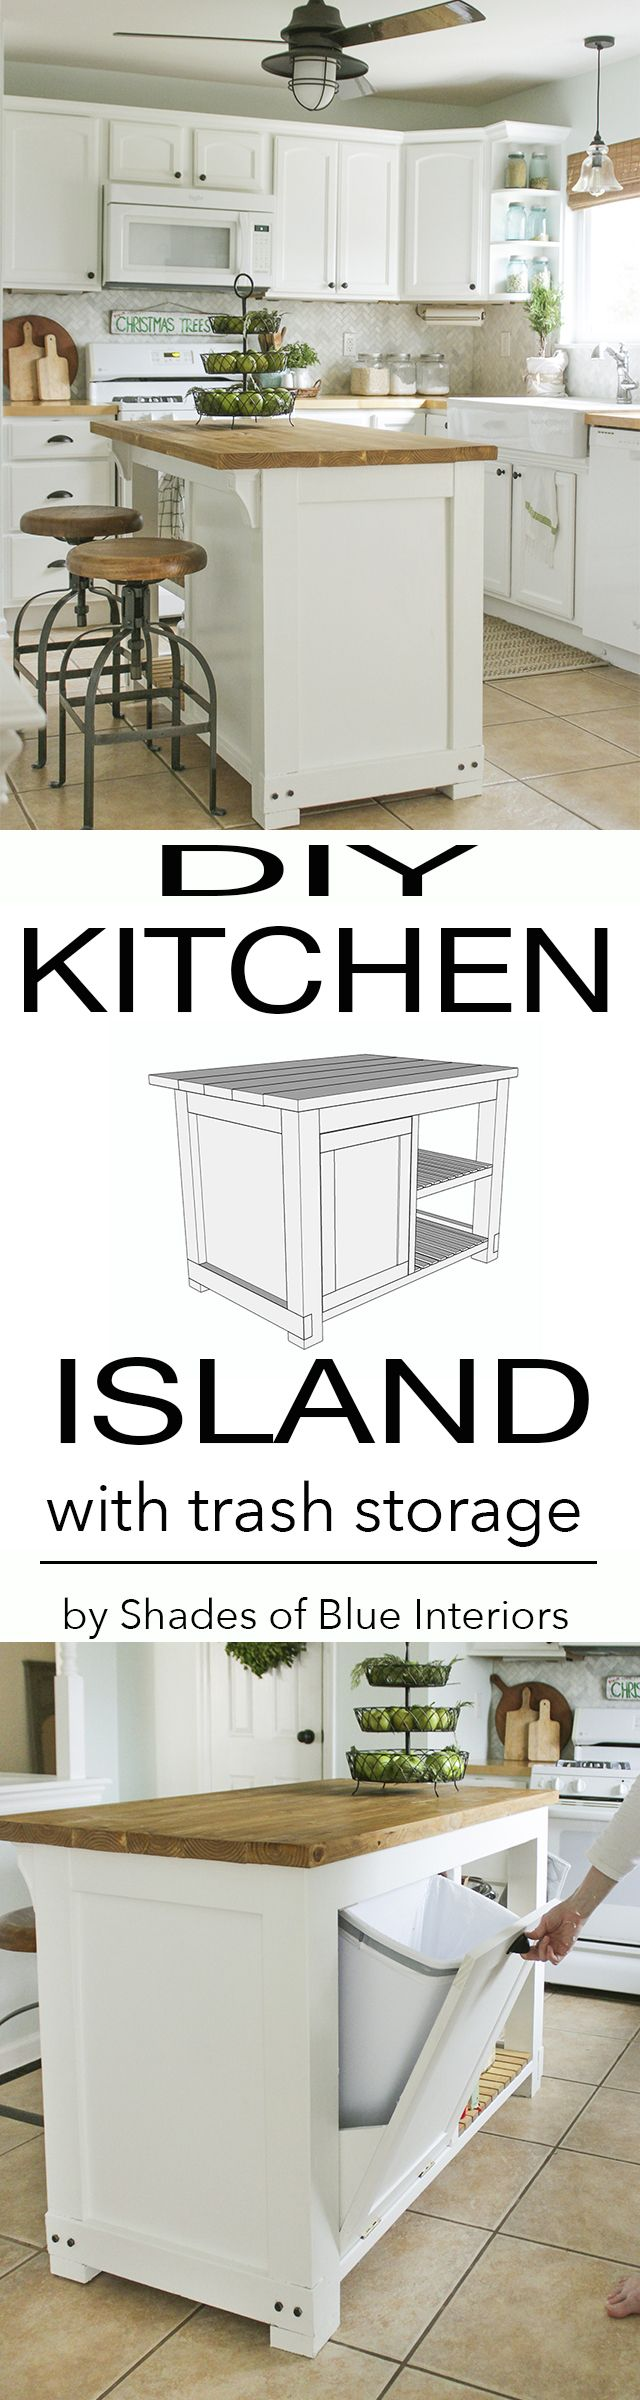 DIY KITCHEN ISLAND with trash storage and free downloadable build ...